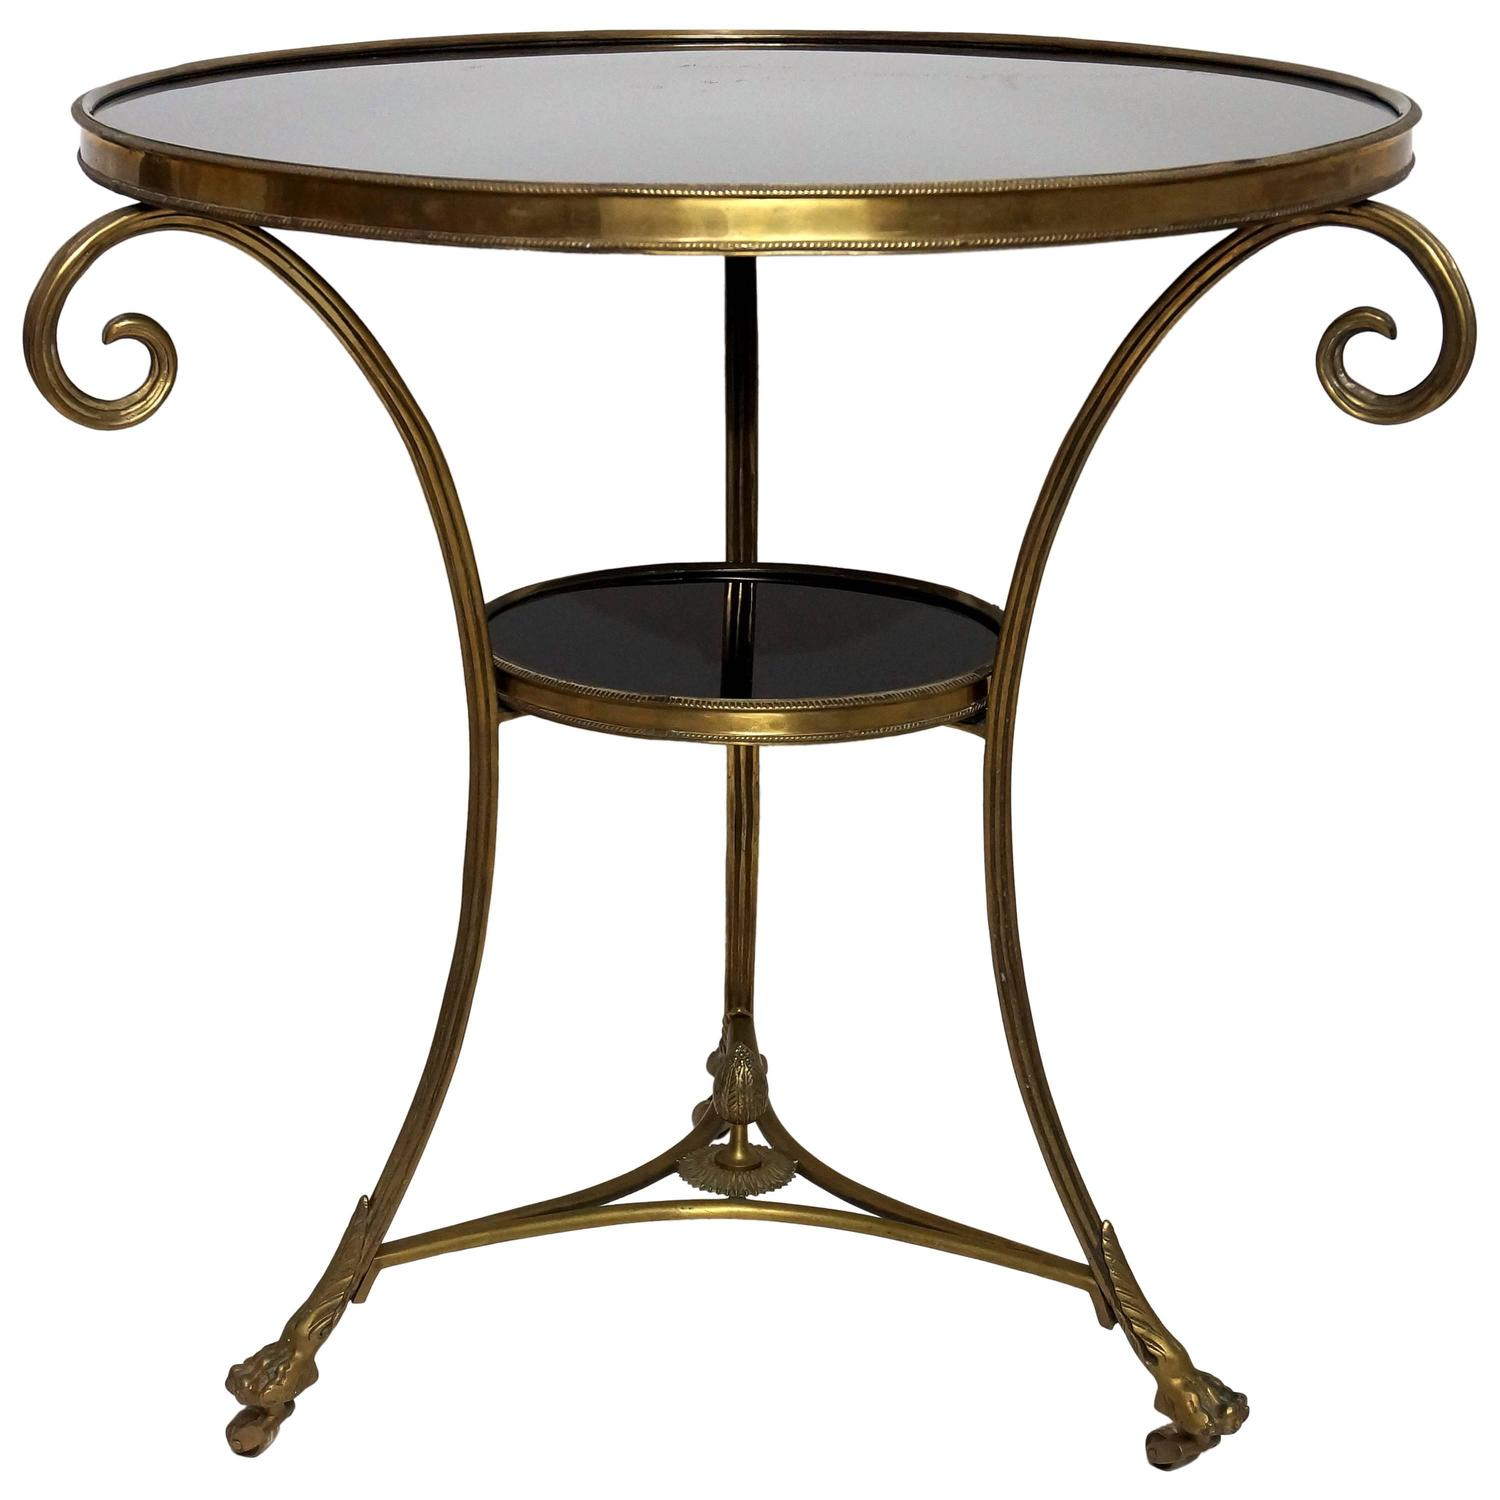 Charles x style two tier gueridon table in bronze and for Table gueridon